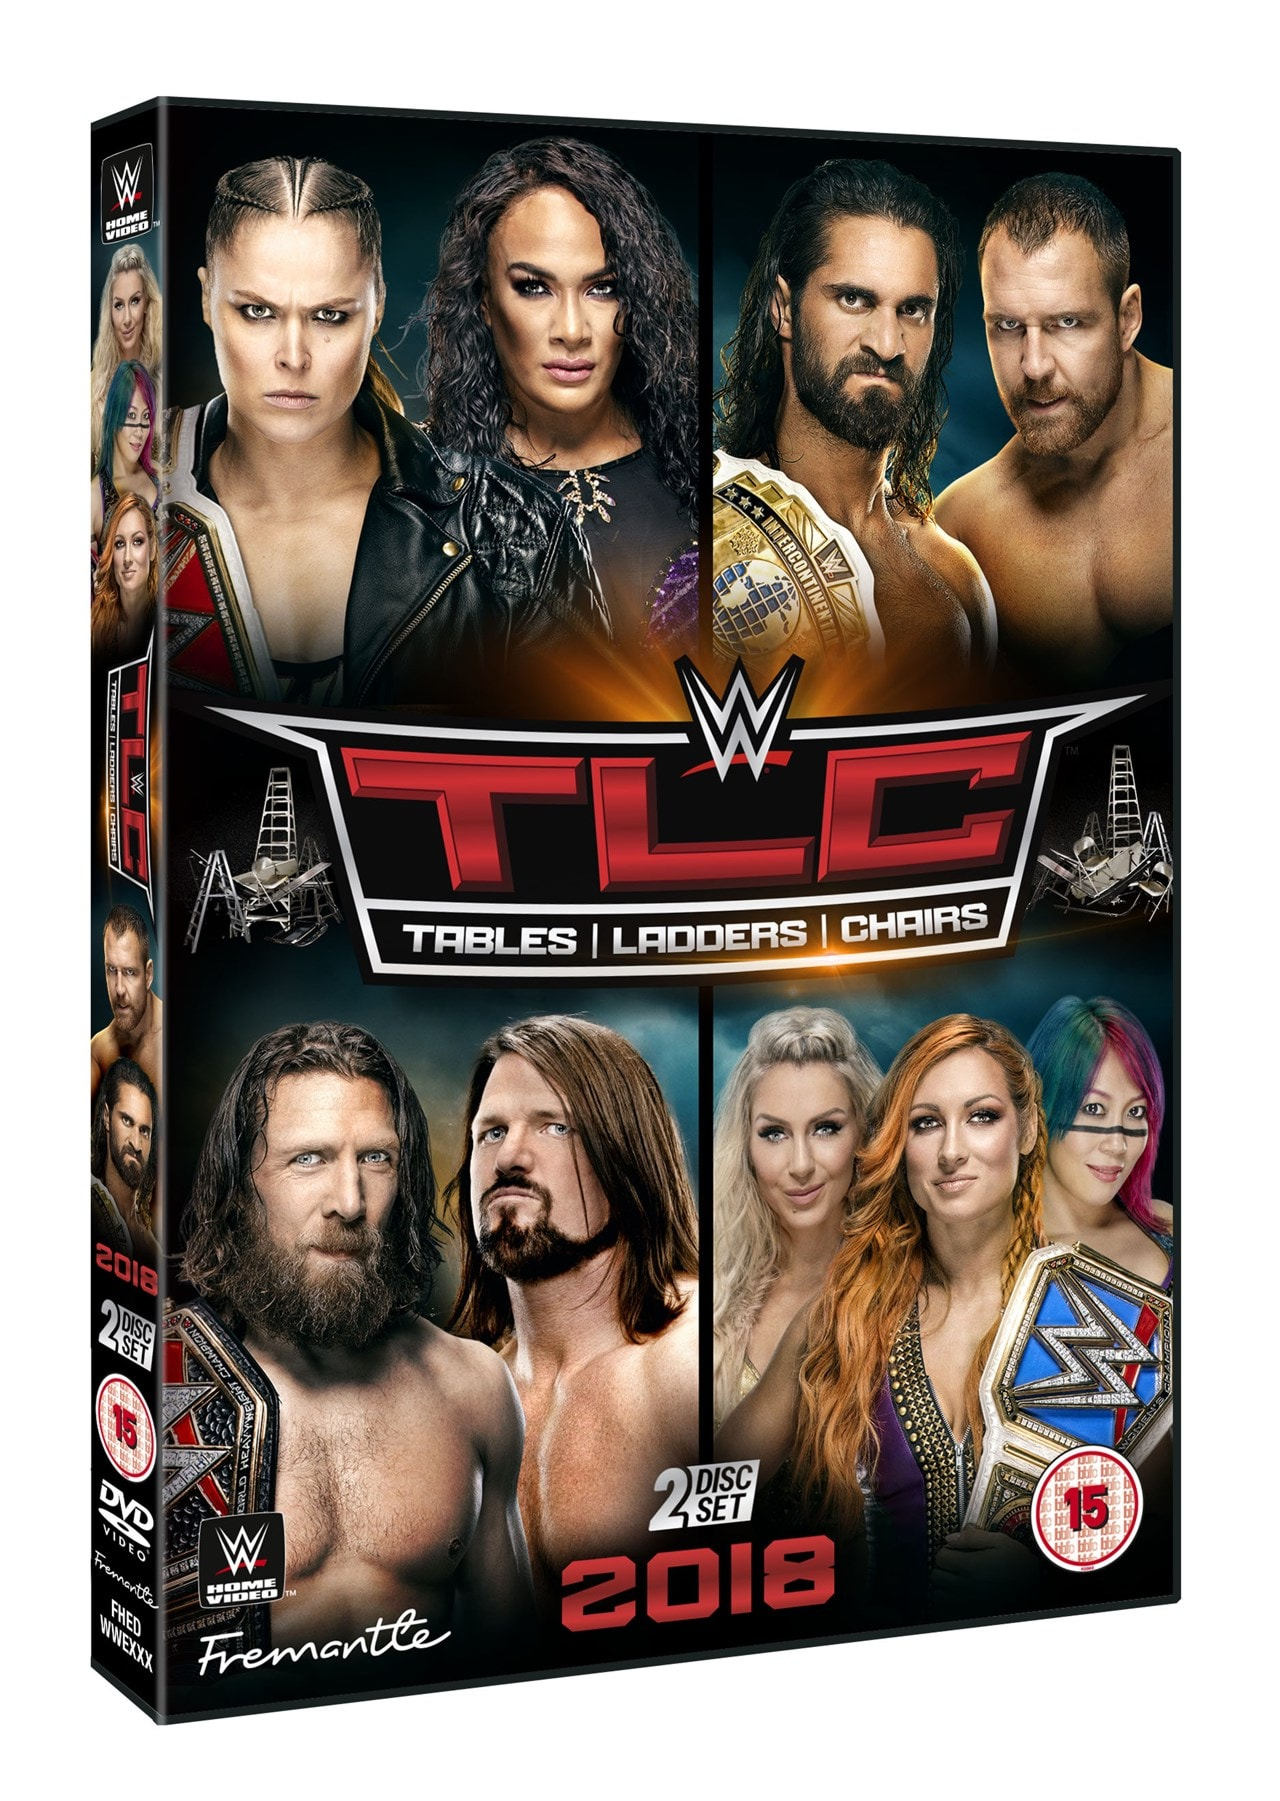 WWE: TLC - Tables/Ladders/Chairs 2018 - 1